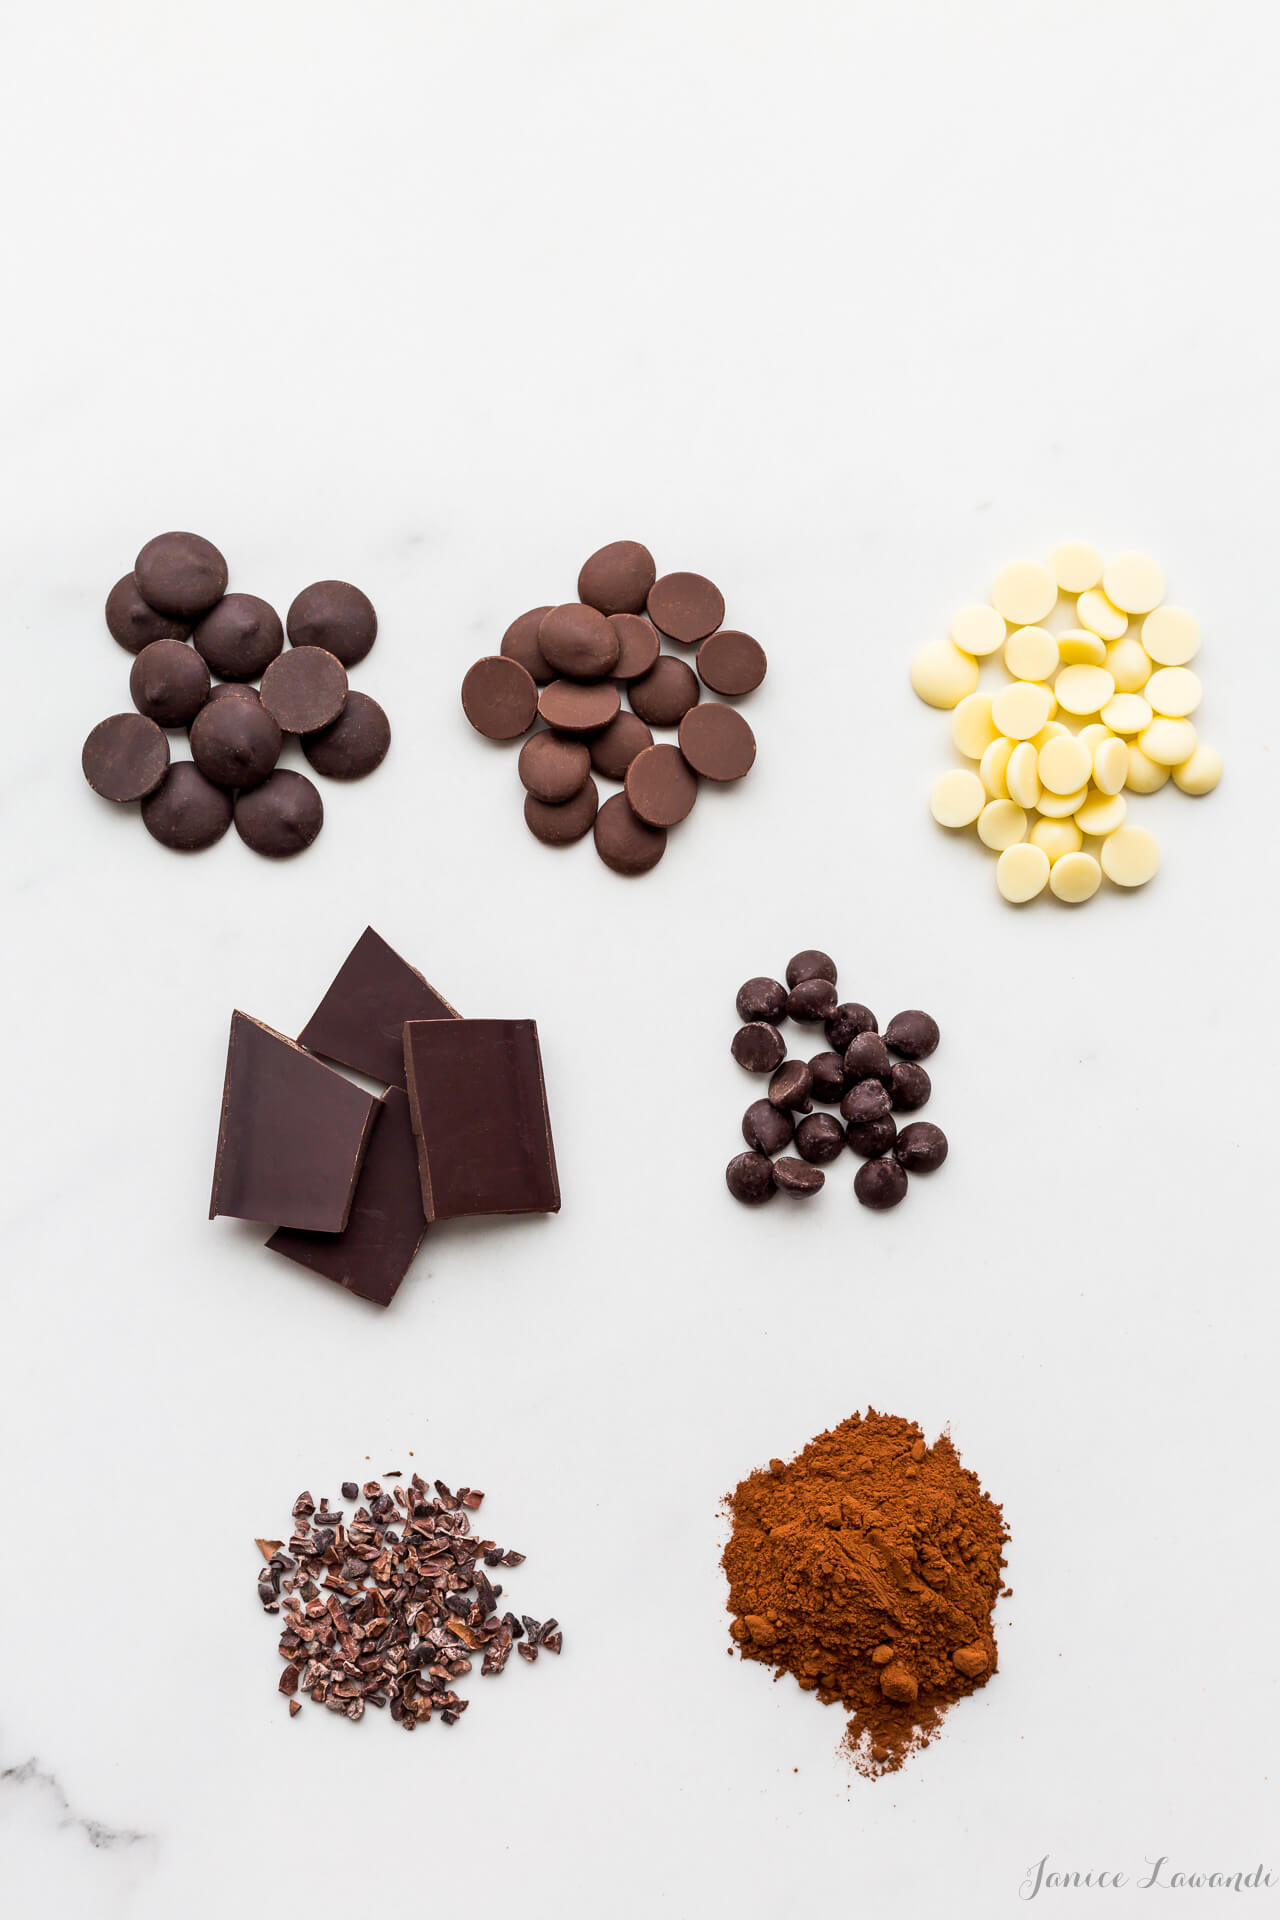 The different types of chocolate that you can use for baking, dark chocolate, milk chocolate, white chocolate, chocolate bars, chocolate chips, cocoa nibs, and cocoa powder